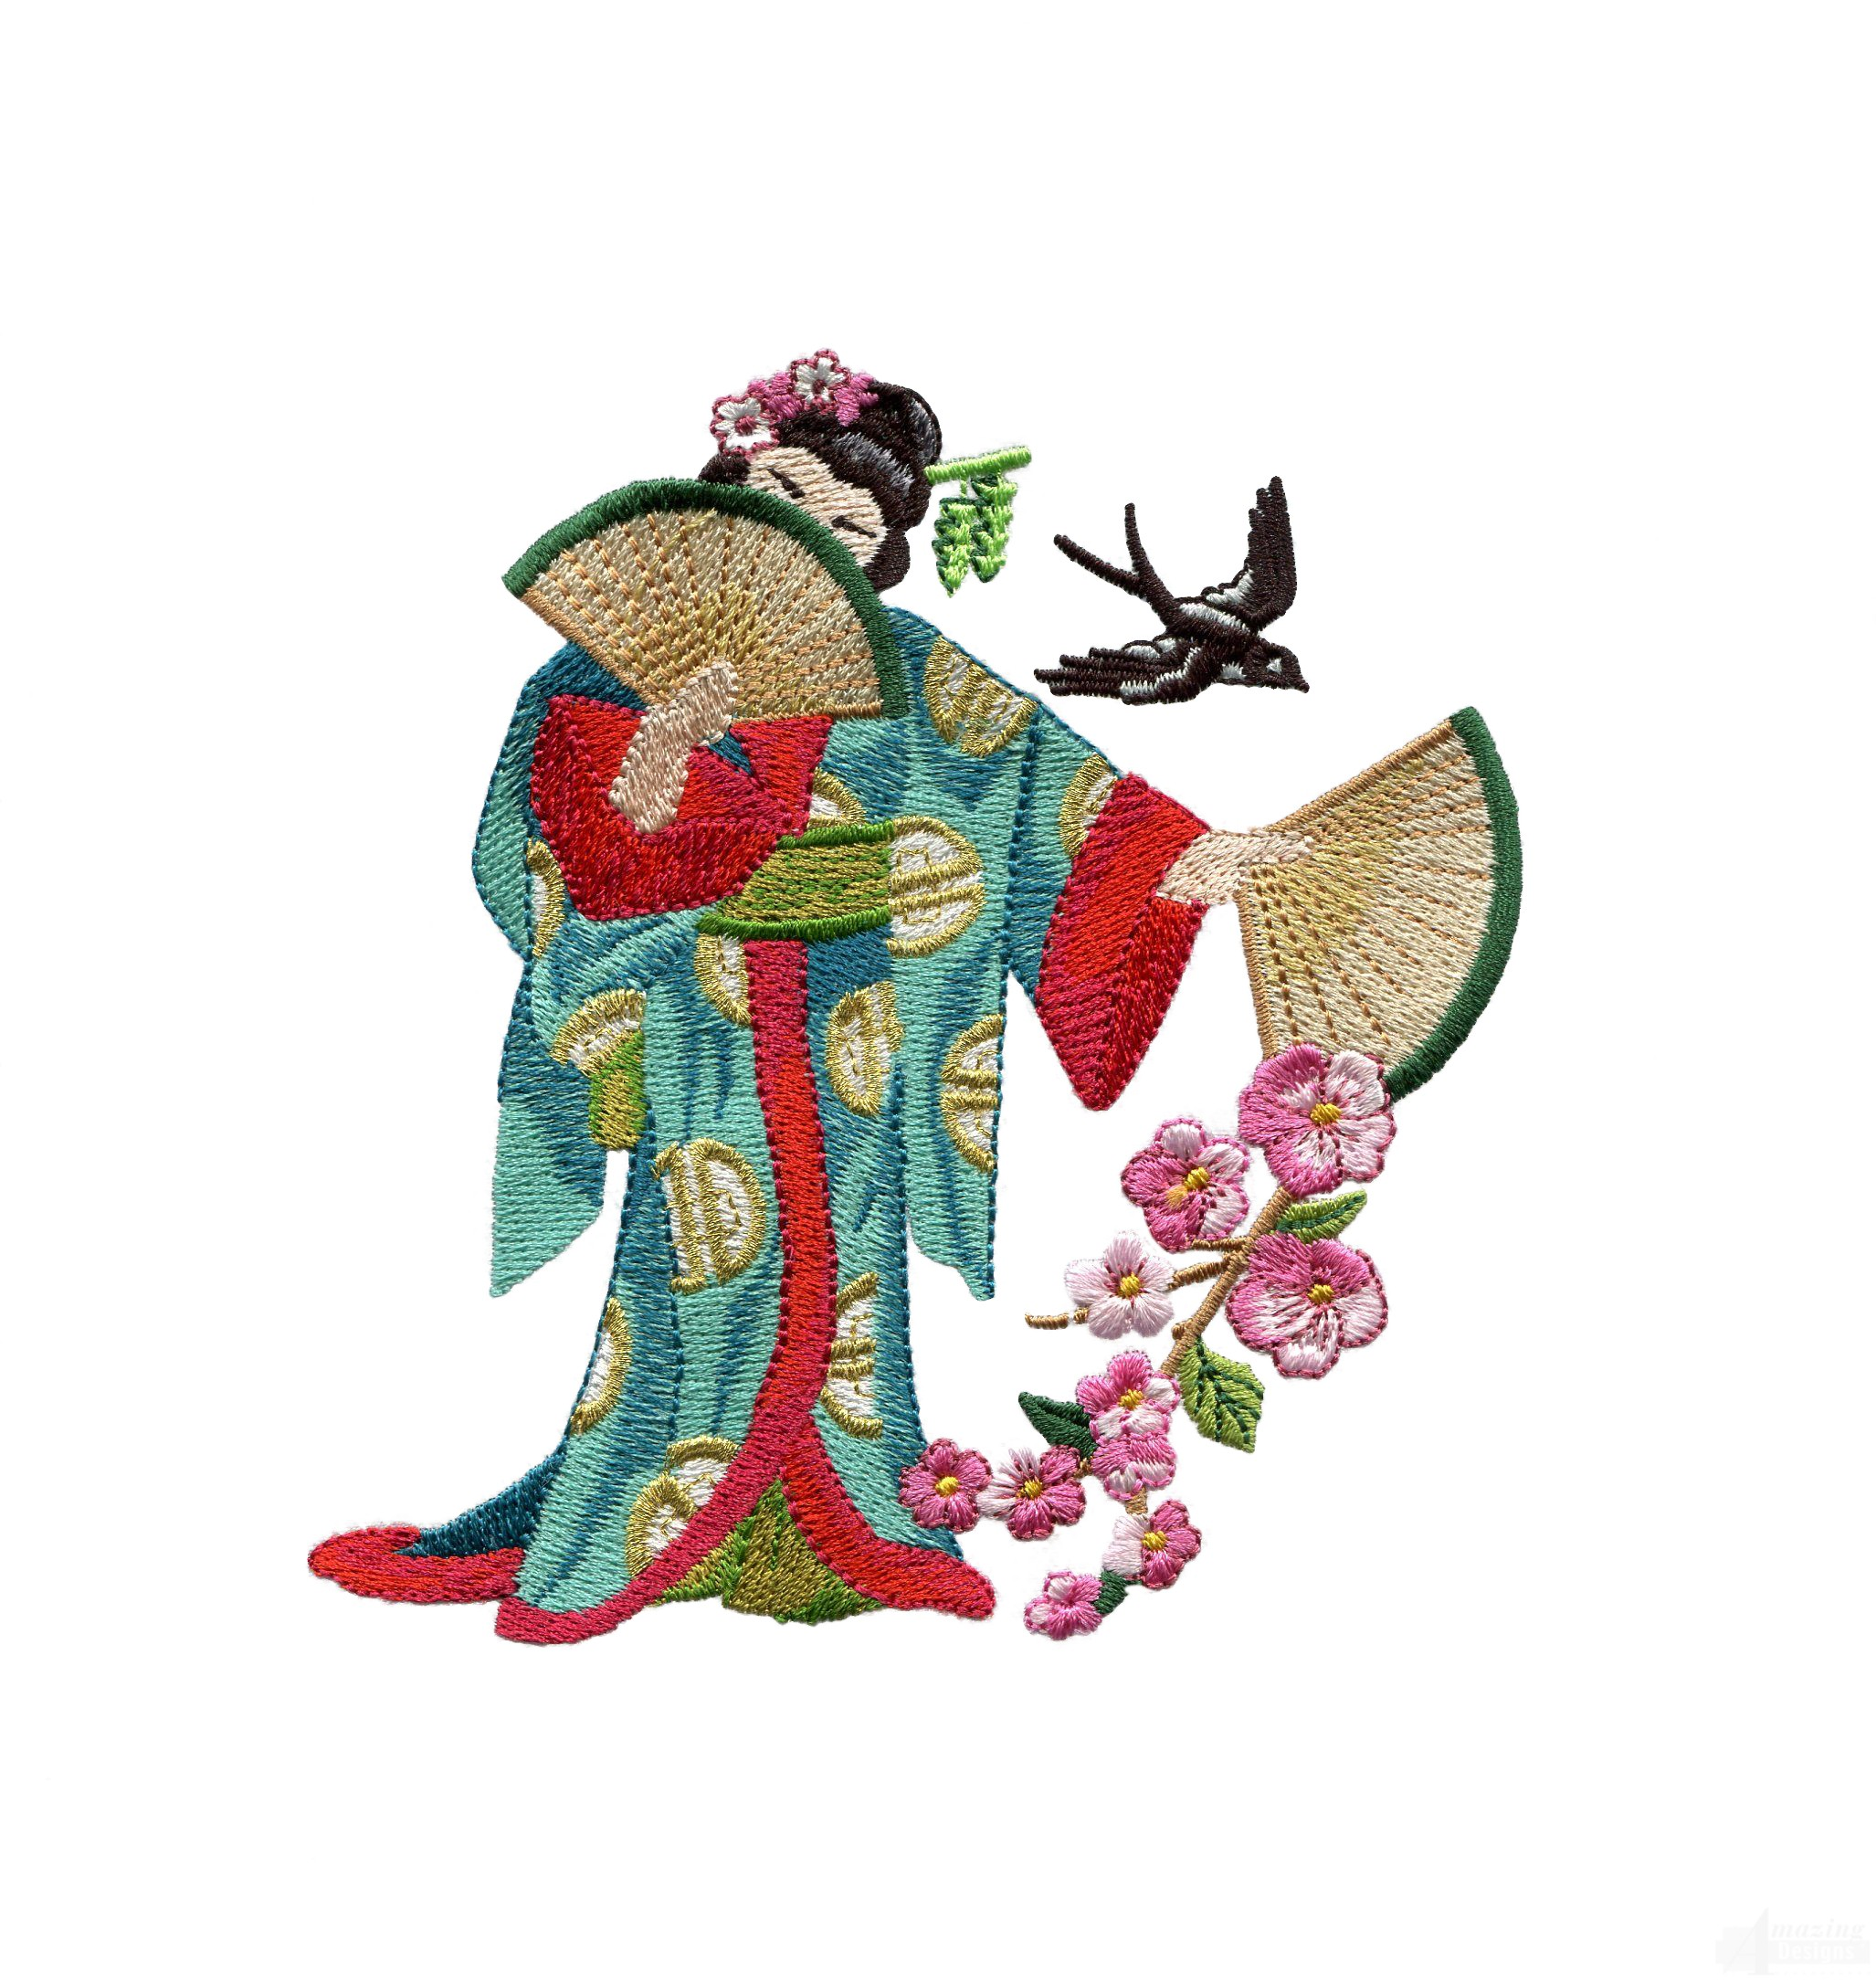 Swngg119 a geishas garden embroidery design for Garden embroidery designs free